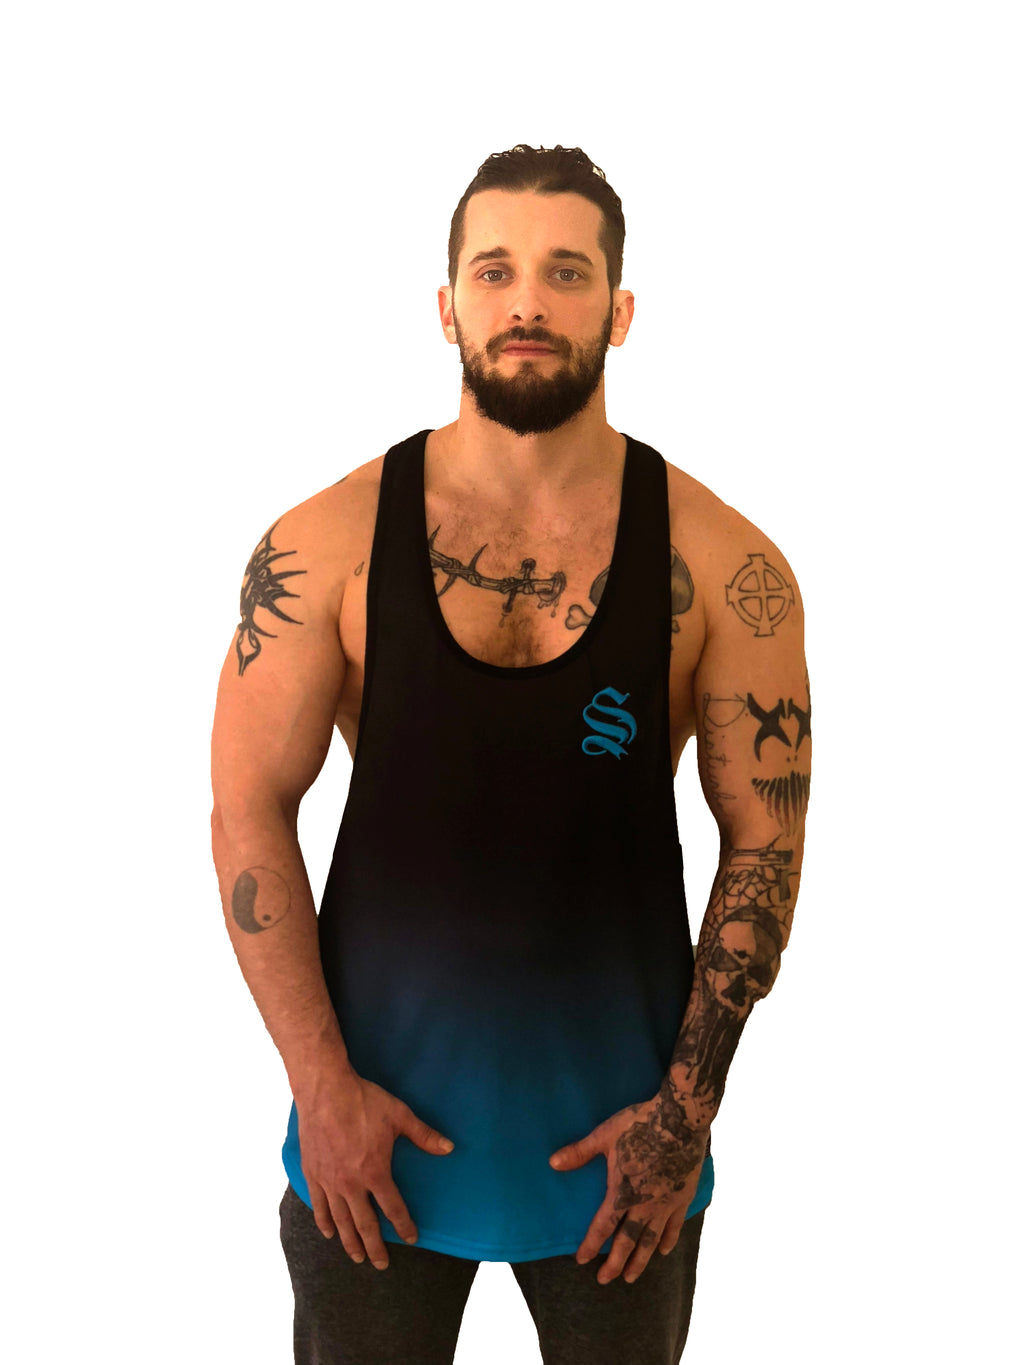 Black/Blue Dip Dye Vest by Sinners Attire - Brit Boss